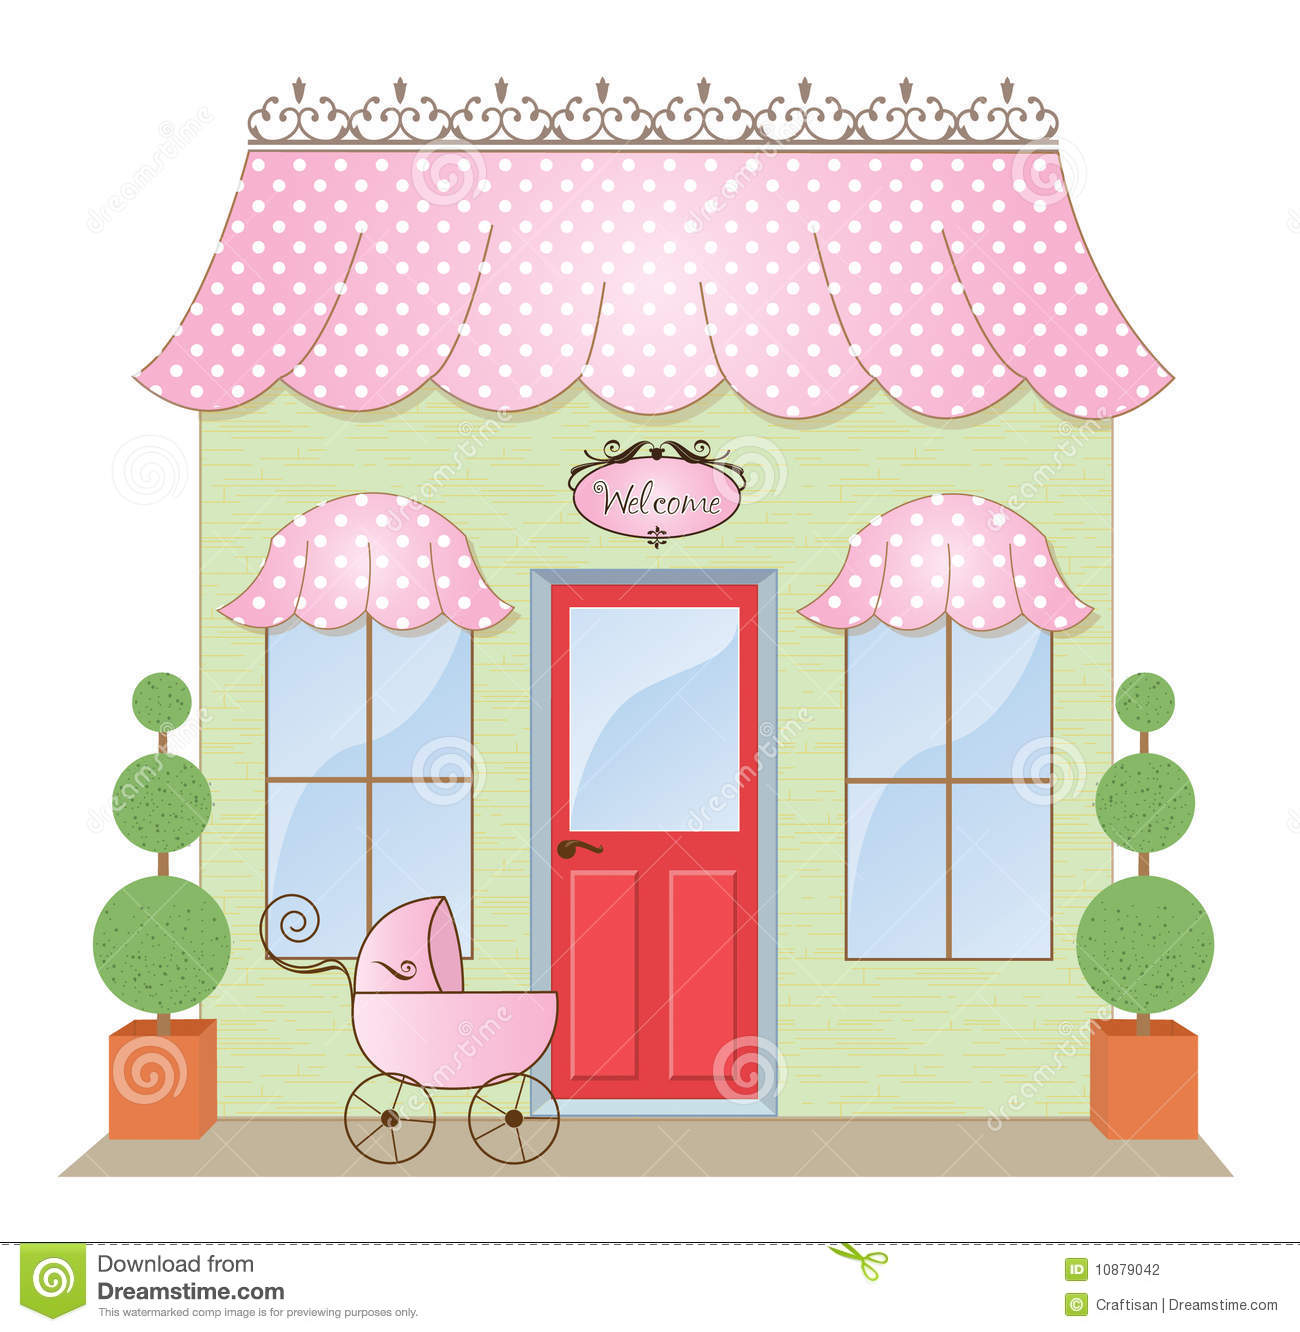 Business plan for a baby boutique